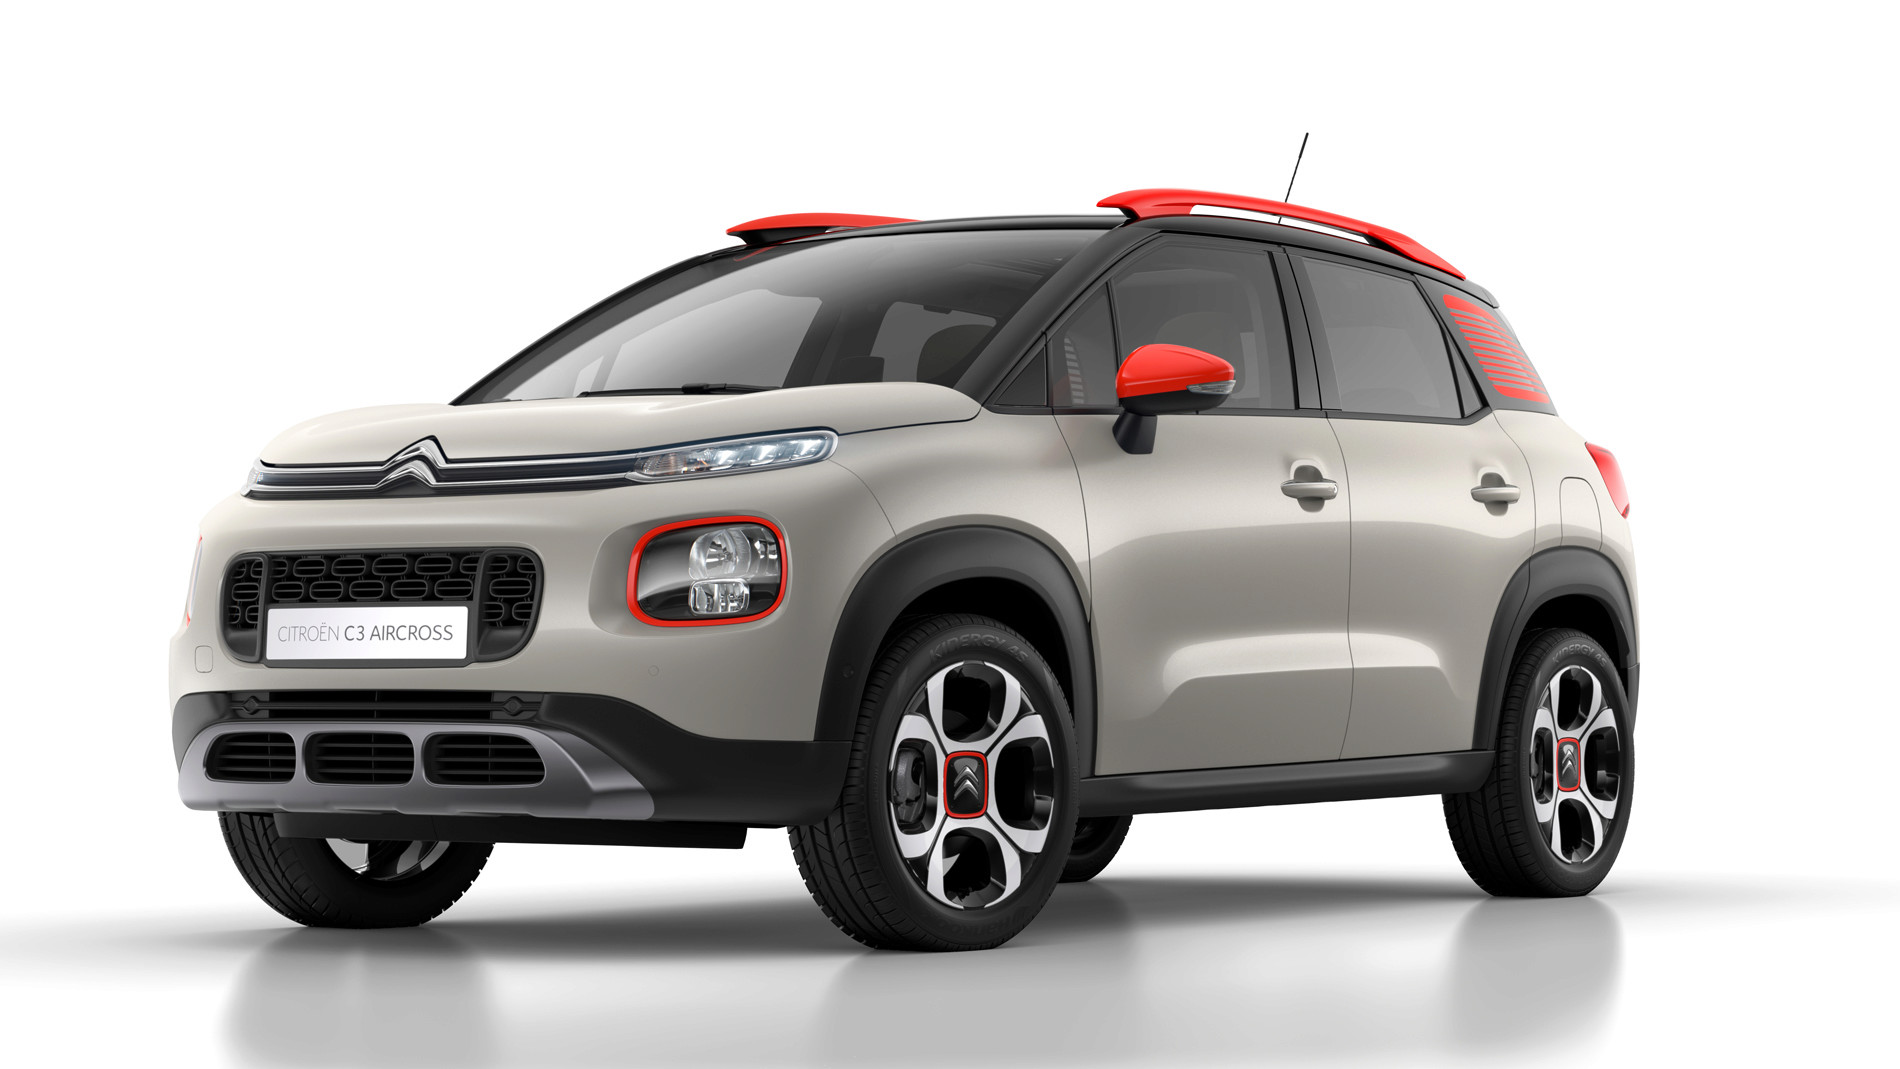 2017 - [SUJET OFFICIEL] C3 Aircross C3a-110